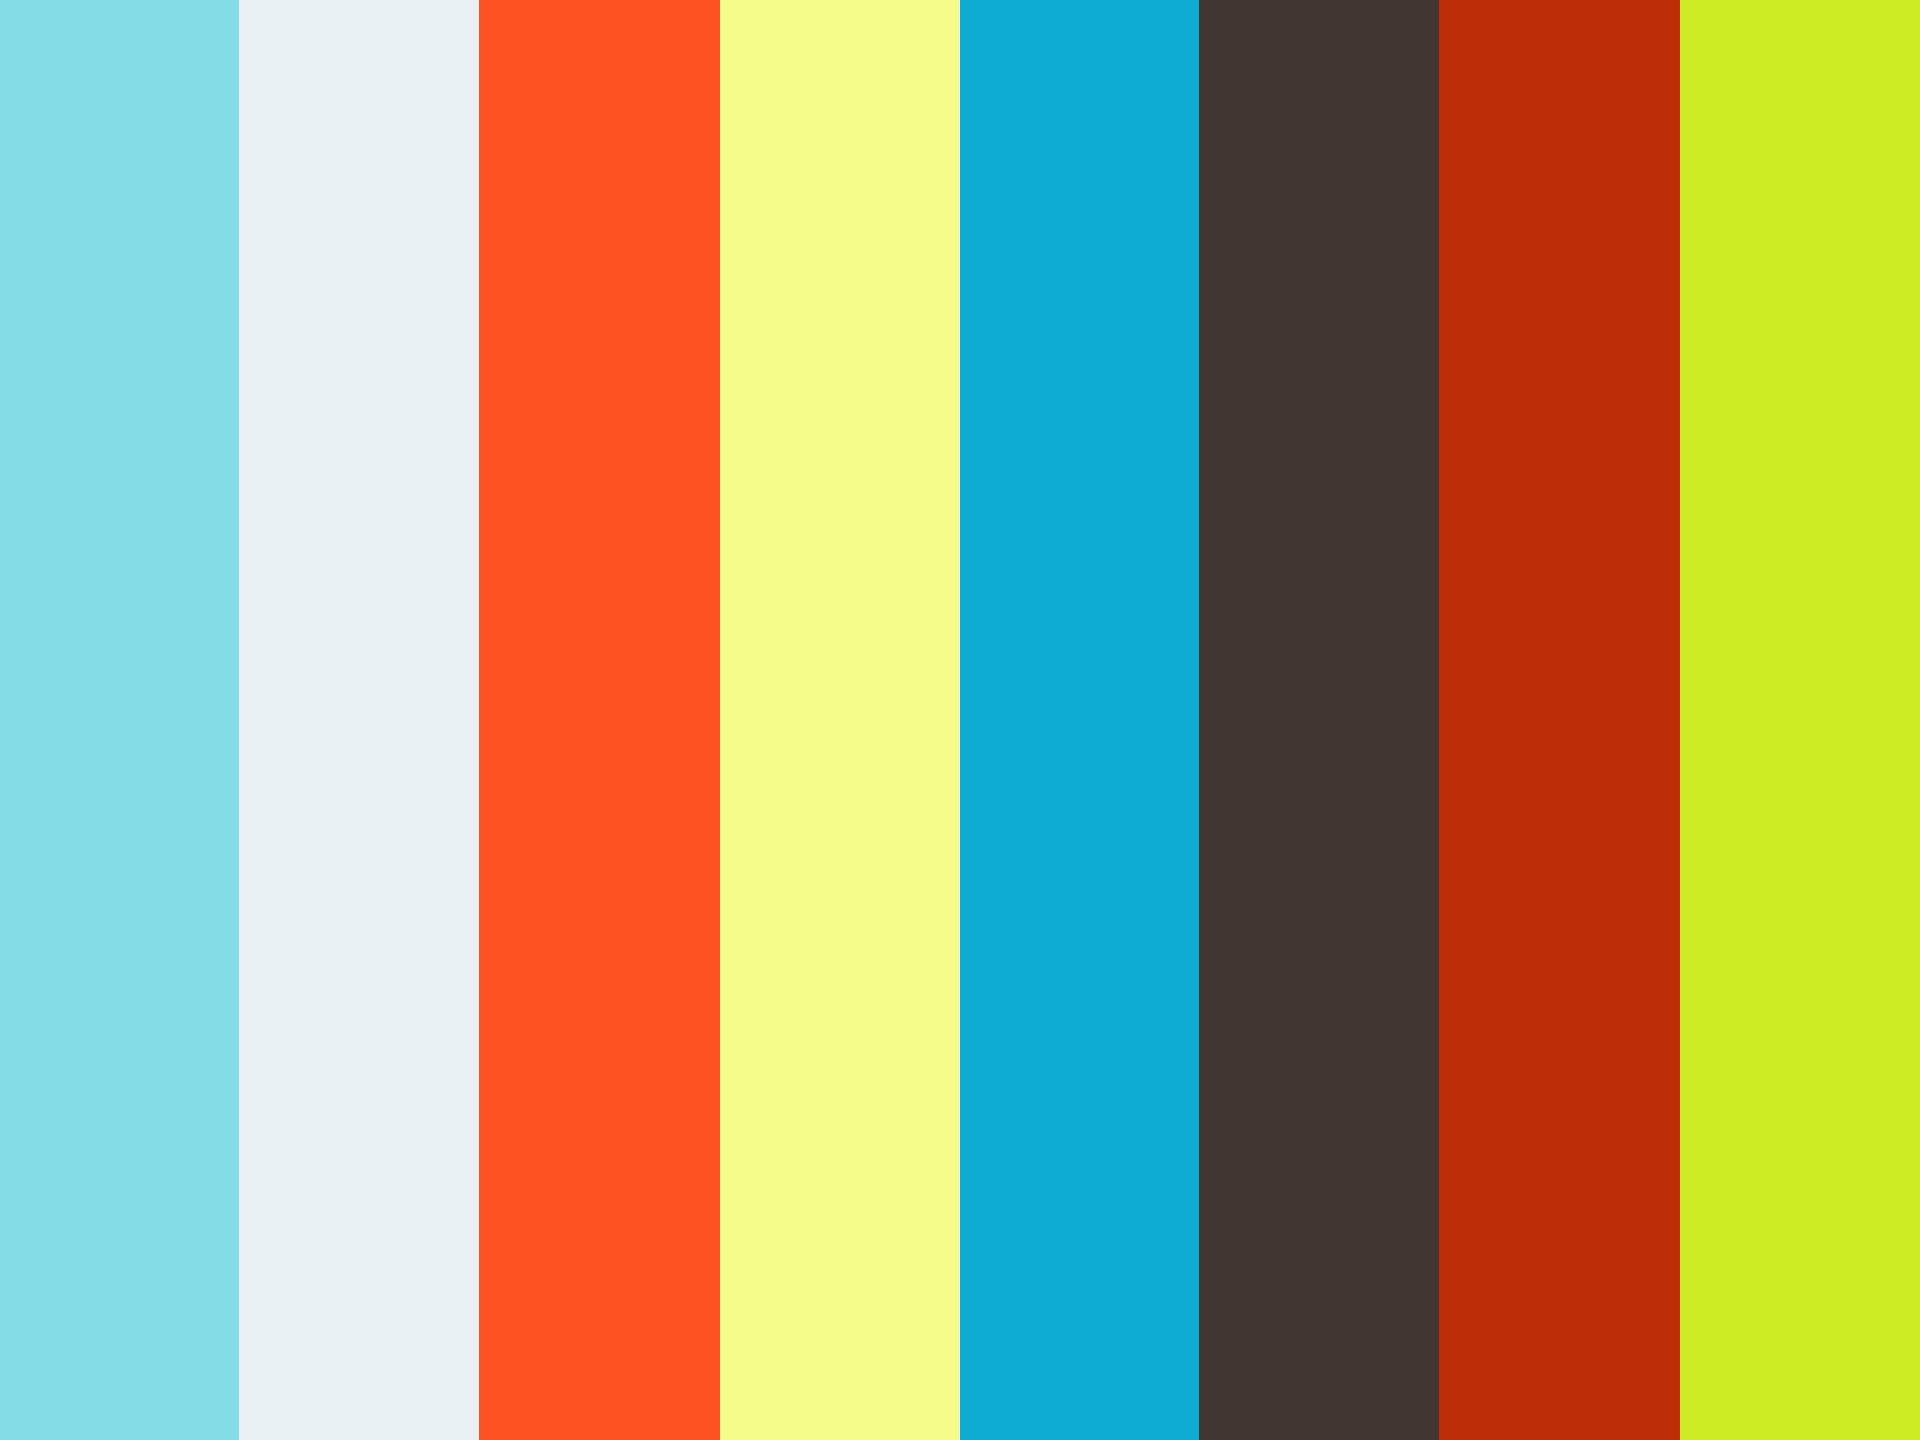 Extent of Inflammation is a Predictor for Outcomes in Ileal Pouches in Inflammatory Bowel Disease 2013